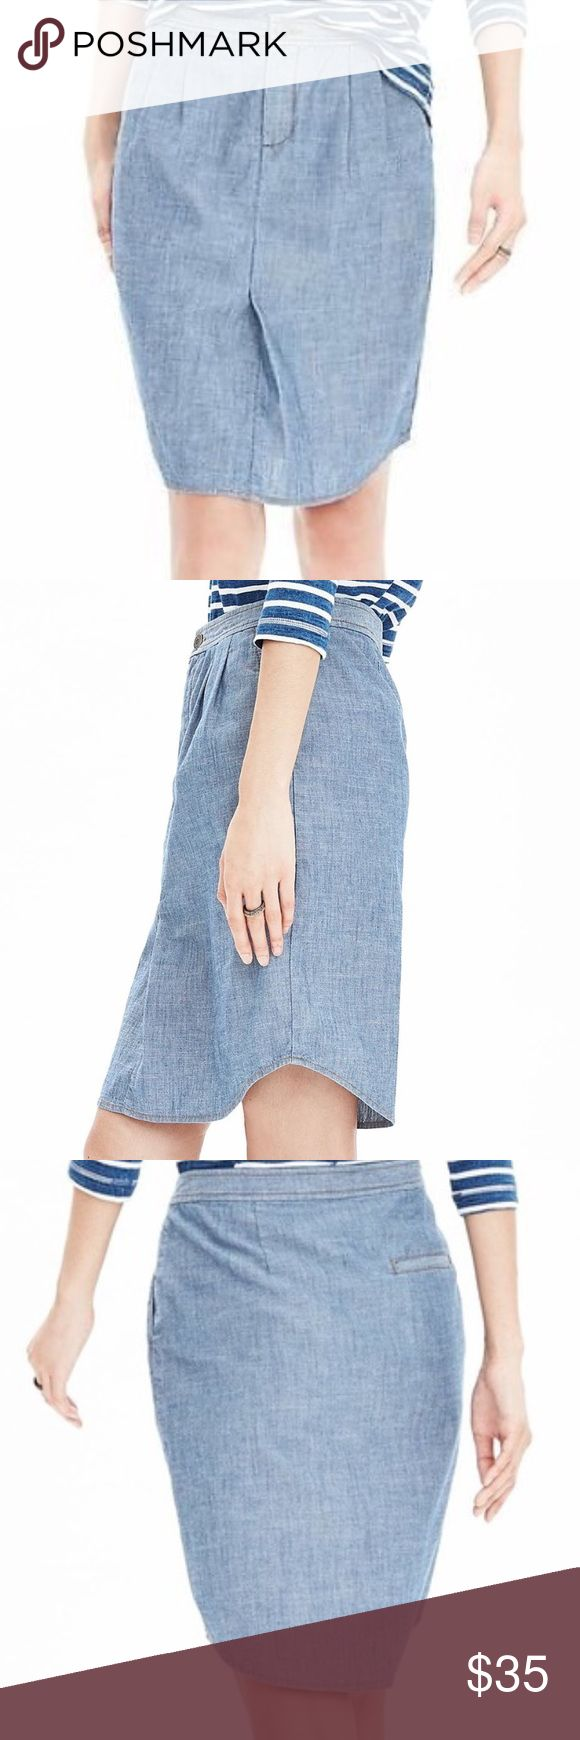 """Banana Republic Chambray Shirt Tail Skirt Updated staple! The denim skirt gets a facelift. Featuring 11/4""""contour waistband, zipper fly closure, slash pockets on front, pleats at front, darted back with functional welt pocket. Shirttail hem, unlined. 98% Cotton 2% Spandex Machine washable 21"""" overall length Banana Republic Skirts"""